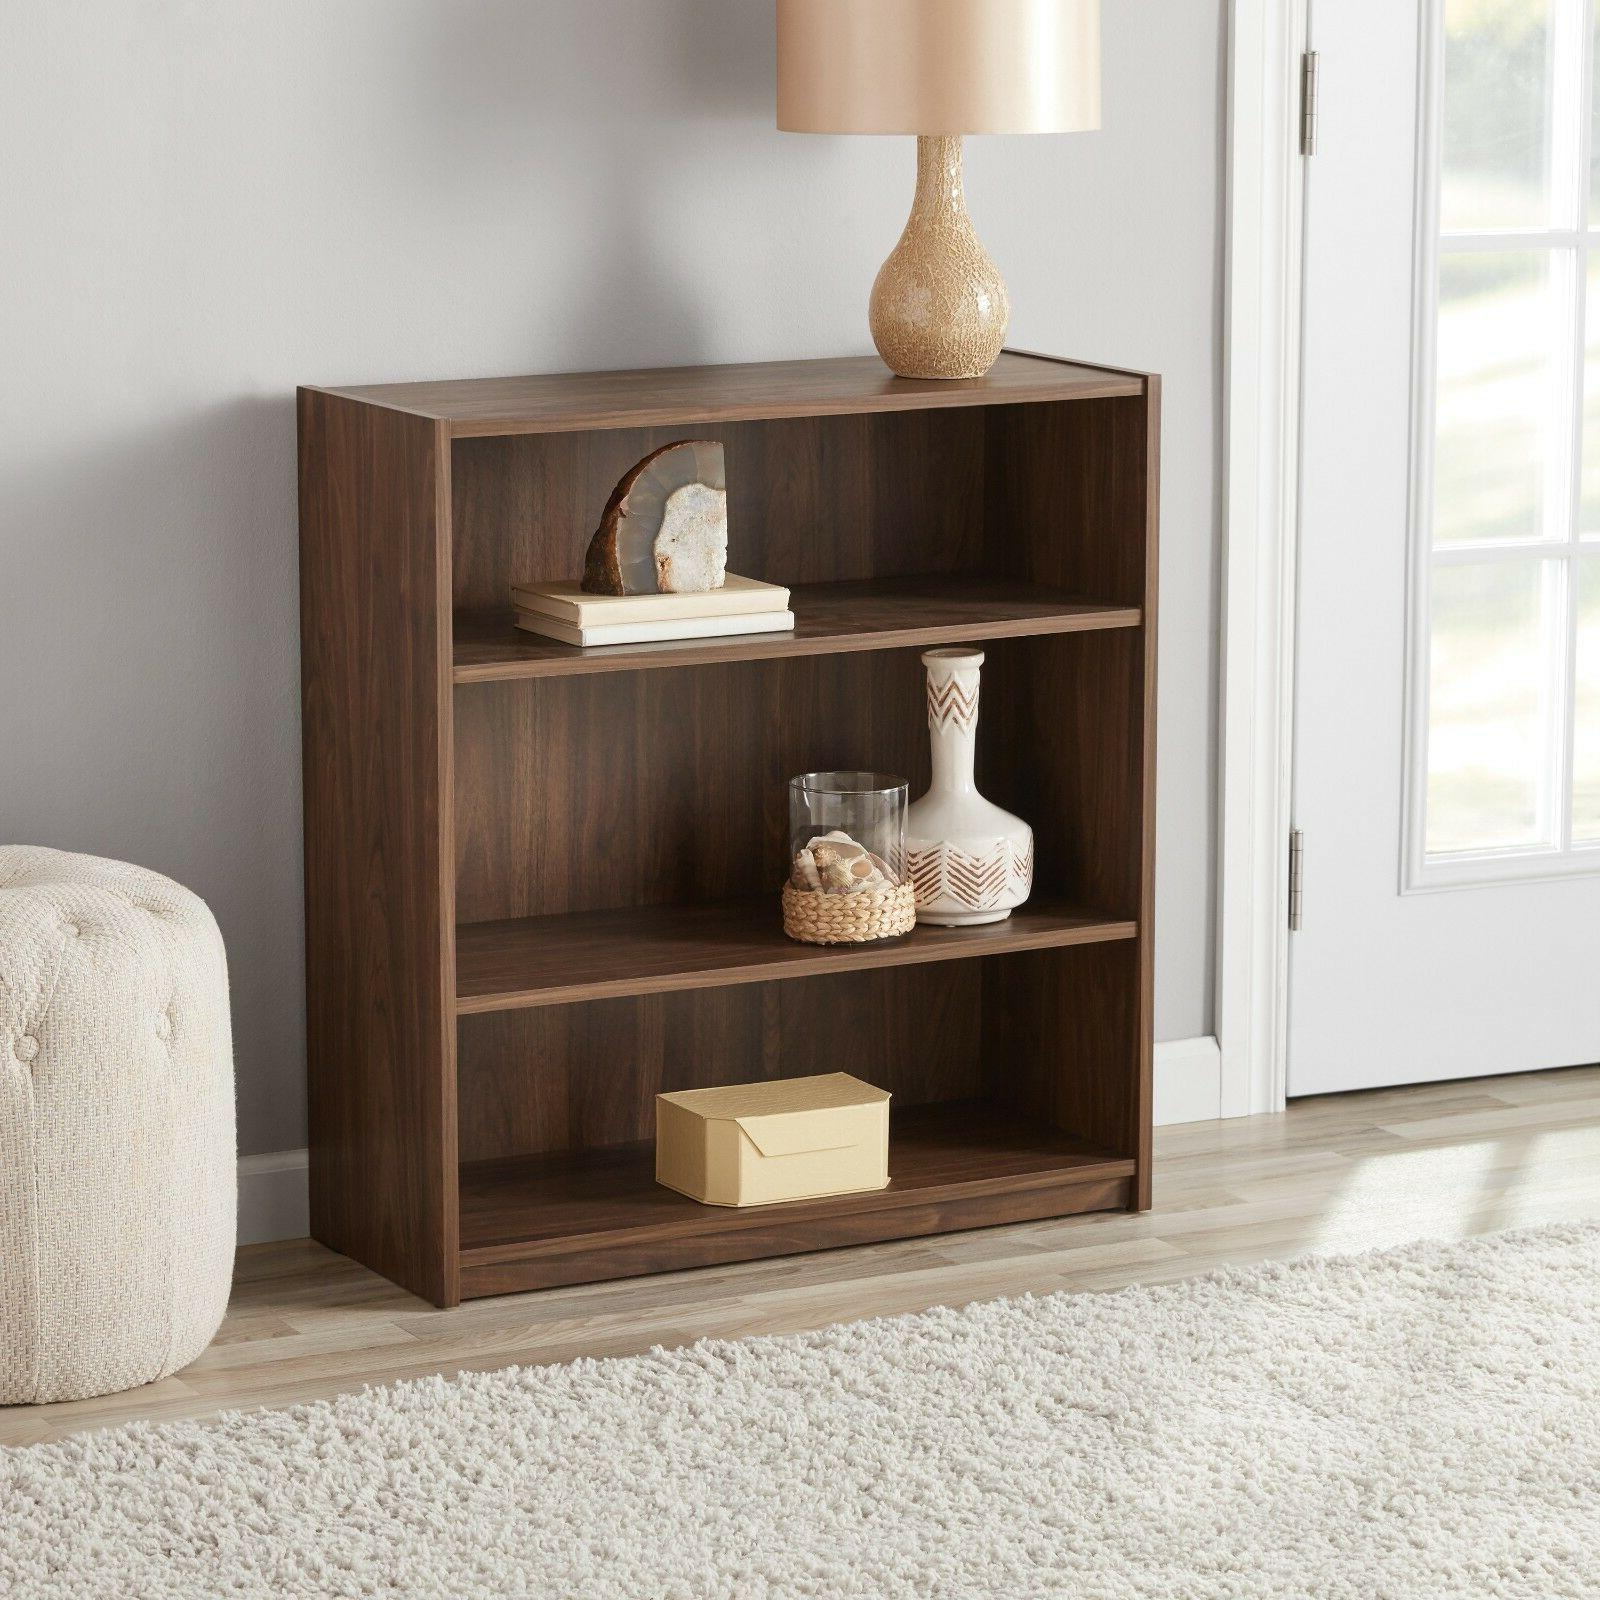 Bookcase Wide Shelving